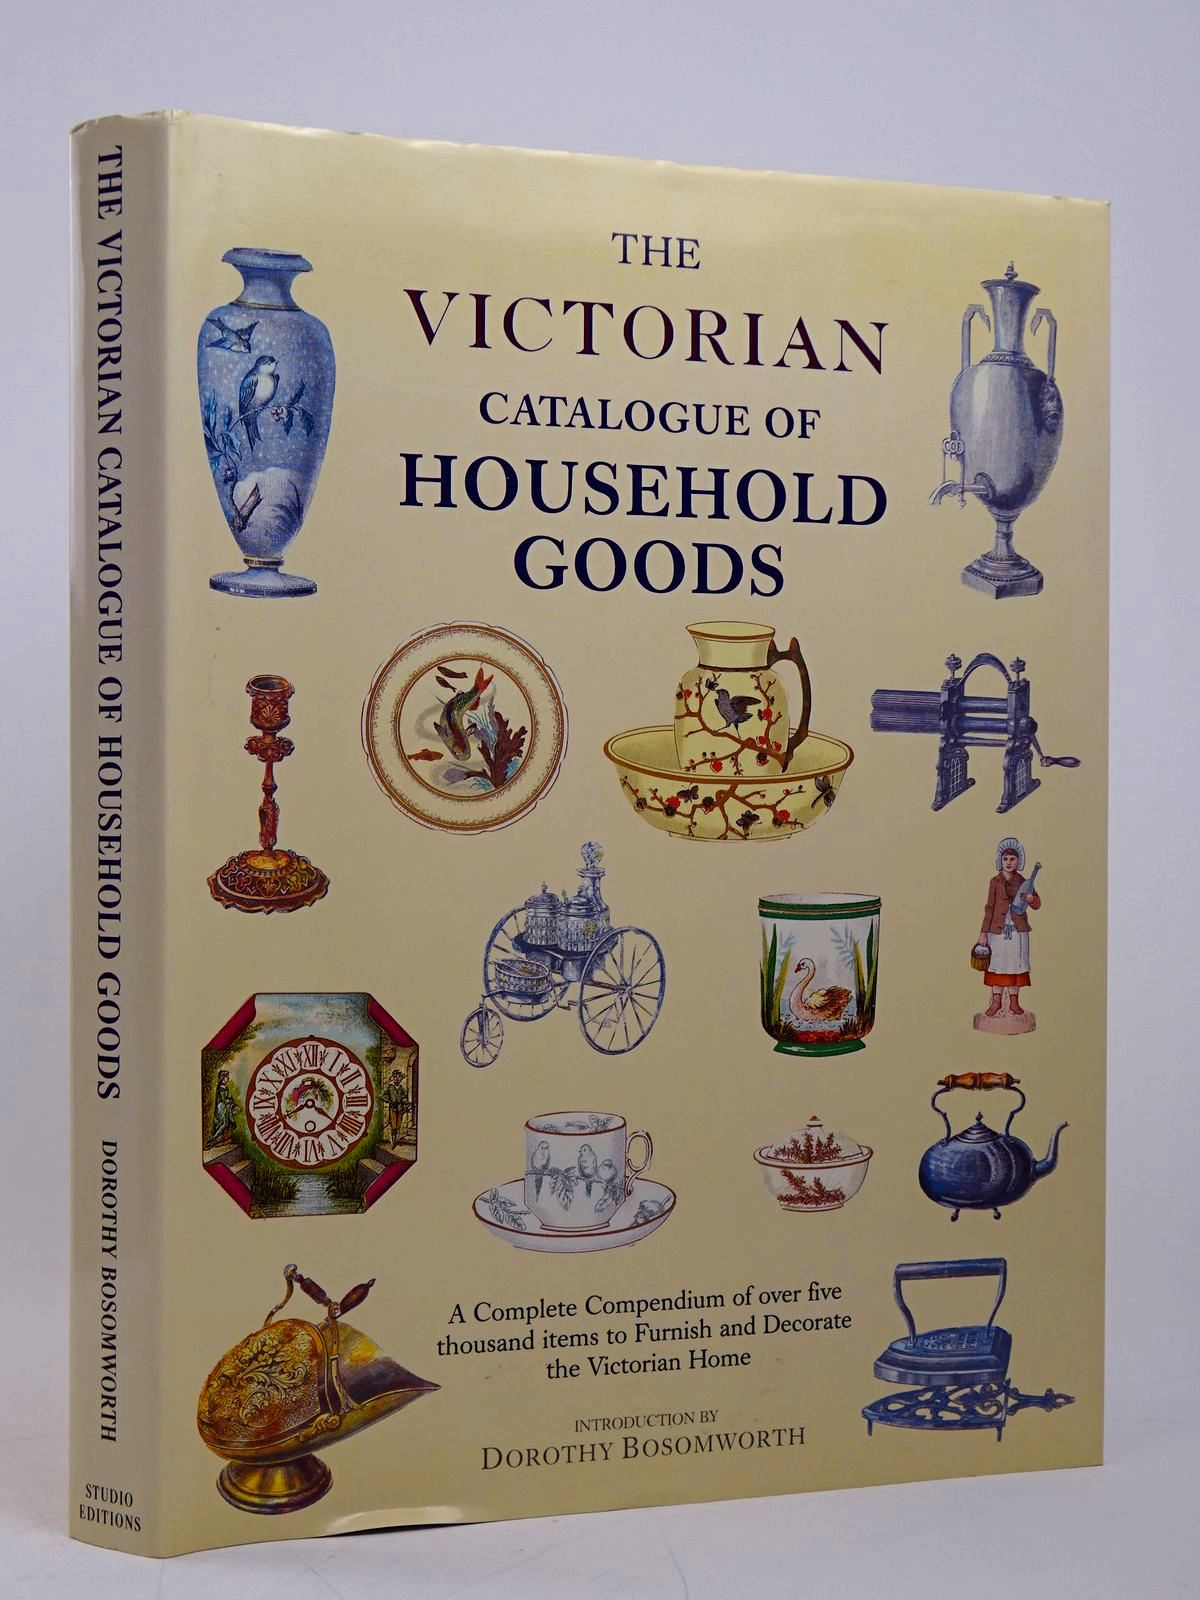 Photo of THE VICTORIAN CATALOGUE OF HOUSEHOLD GOODS written by Bosomworth, Dorothy published by Studio Editions (STOCK CODE: 1817859)  for sale by Stella & Rose's Books